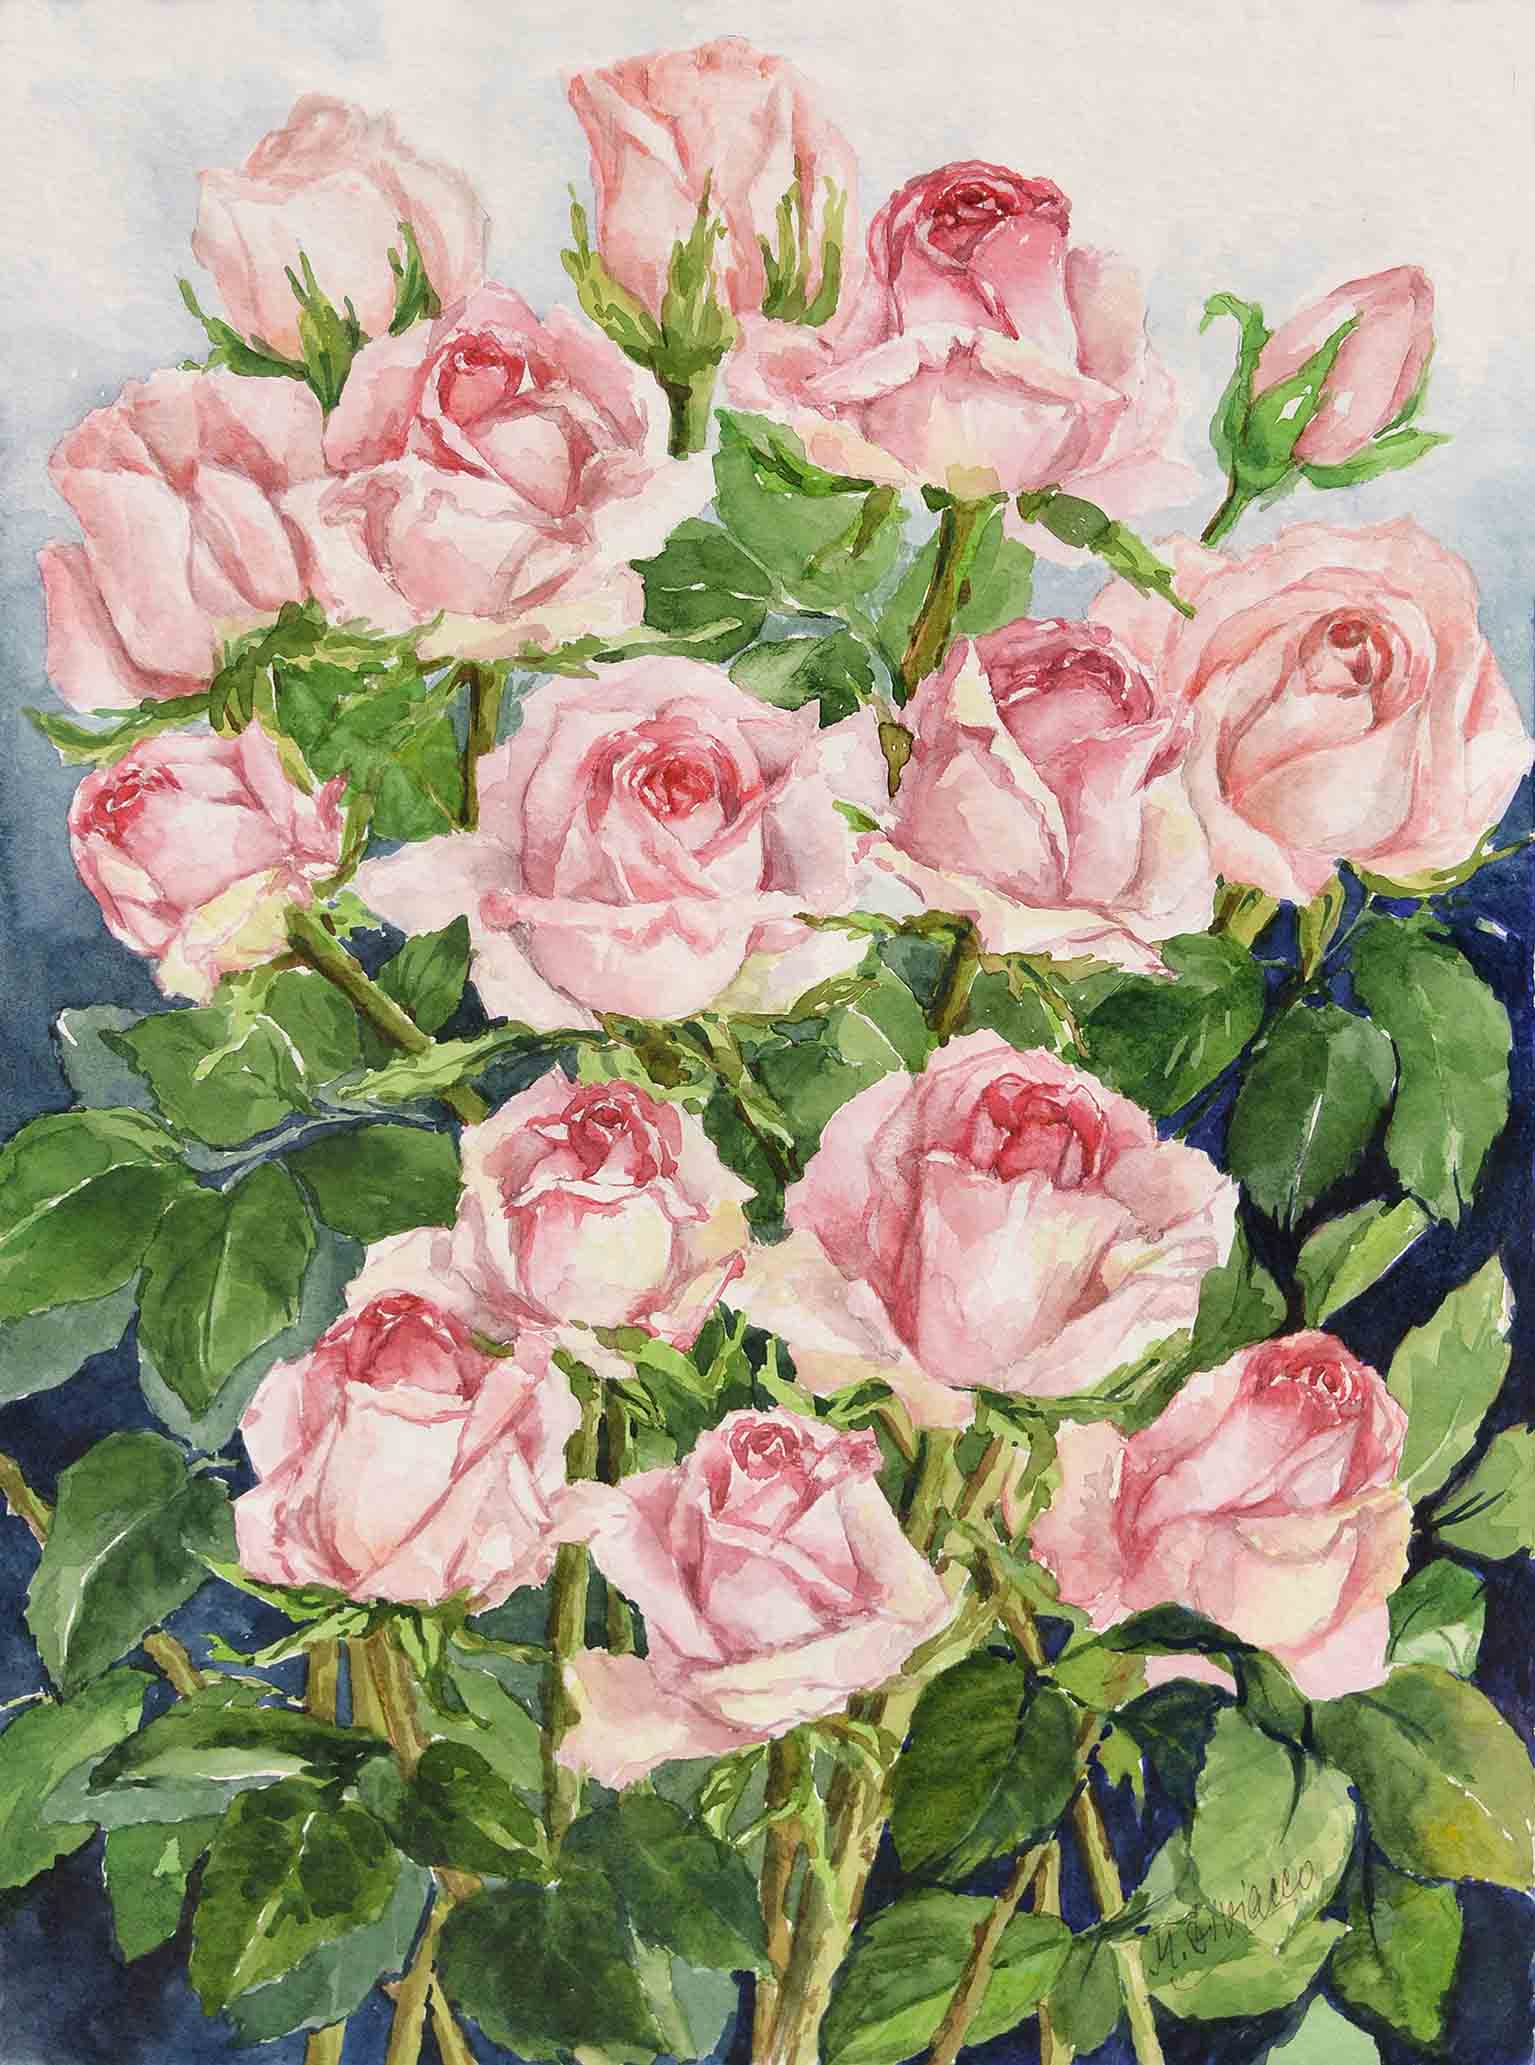 Rose rosa - acquerello cm 48x36